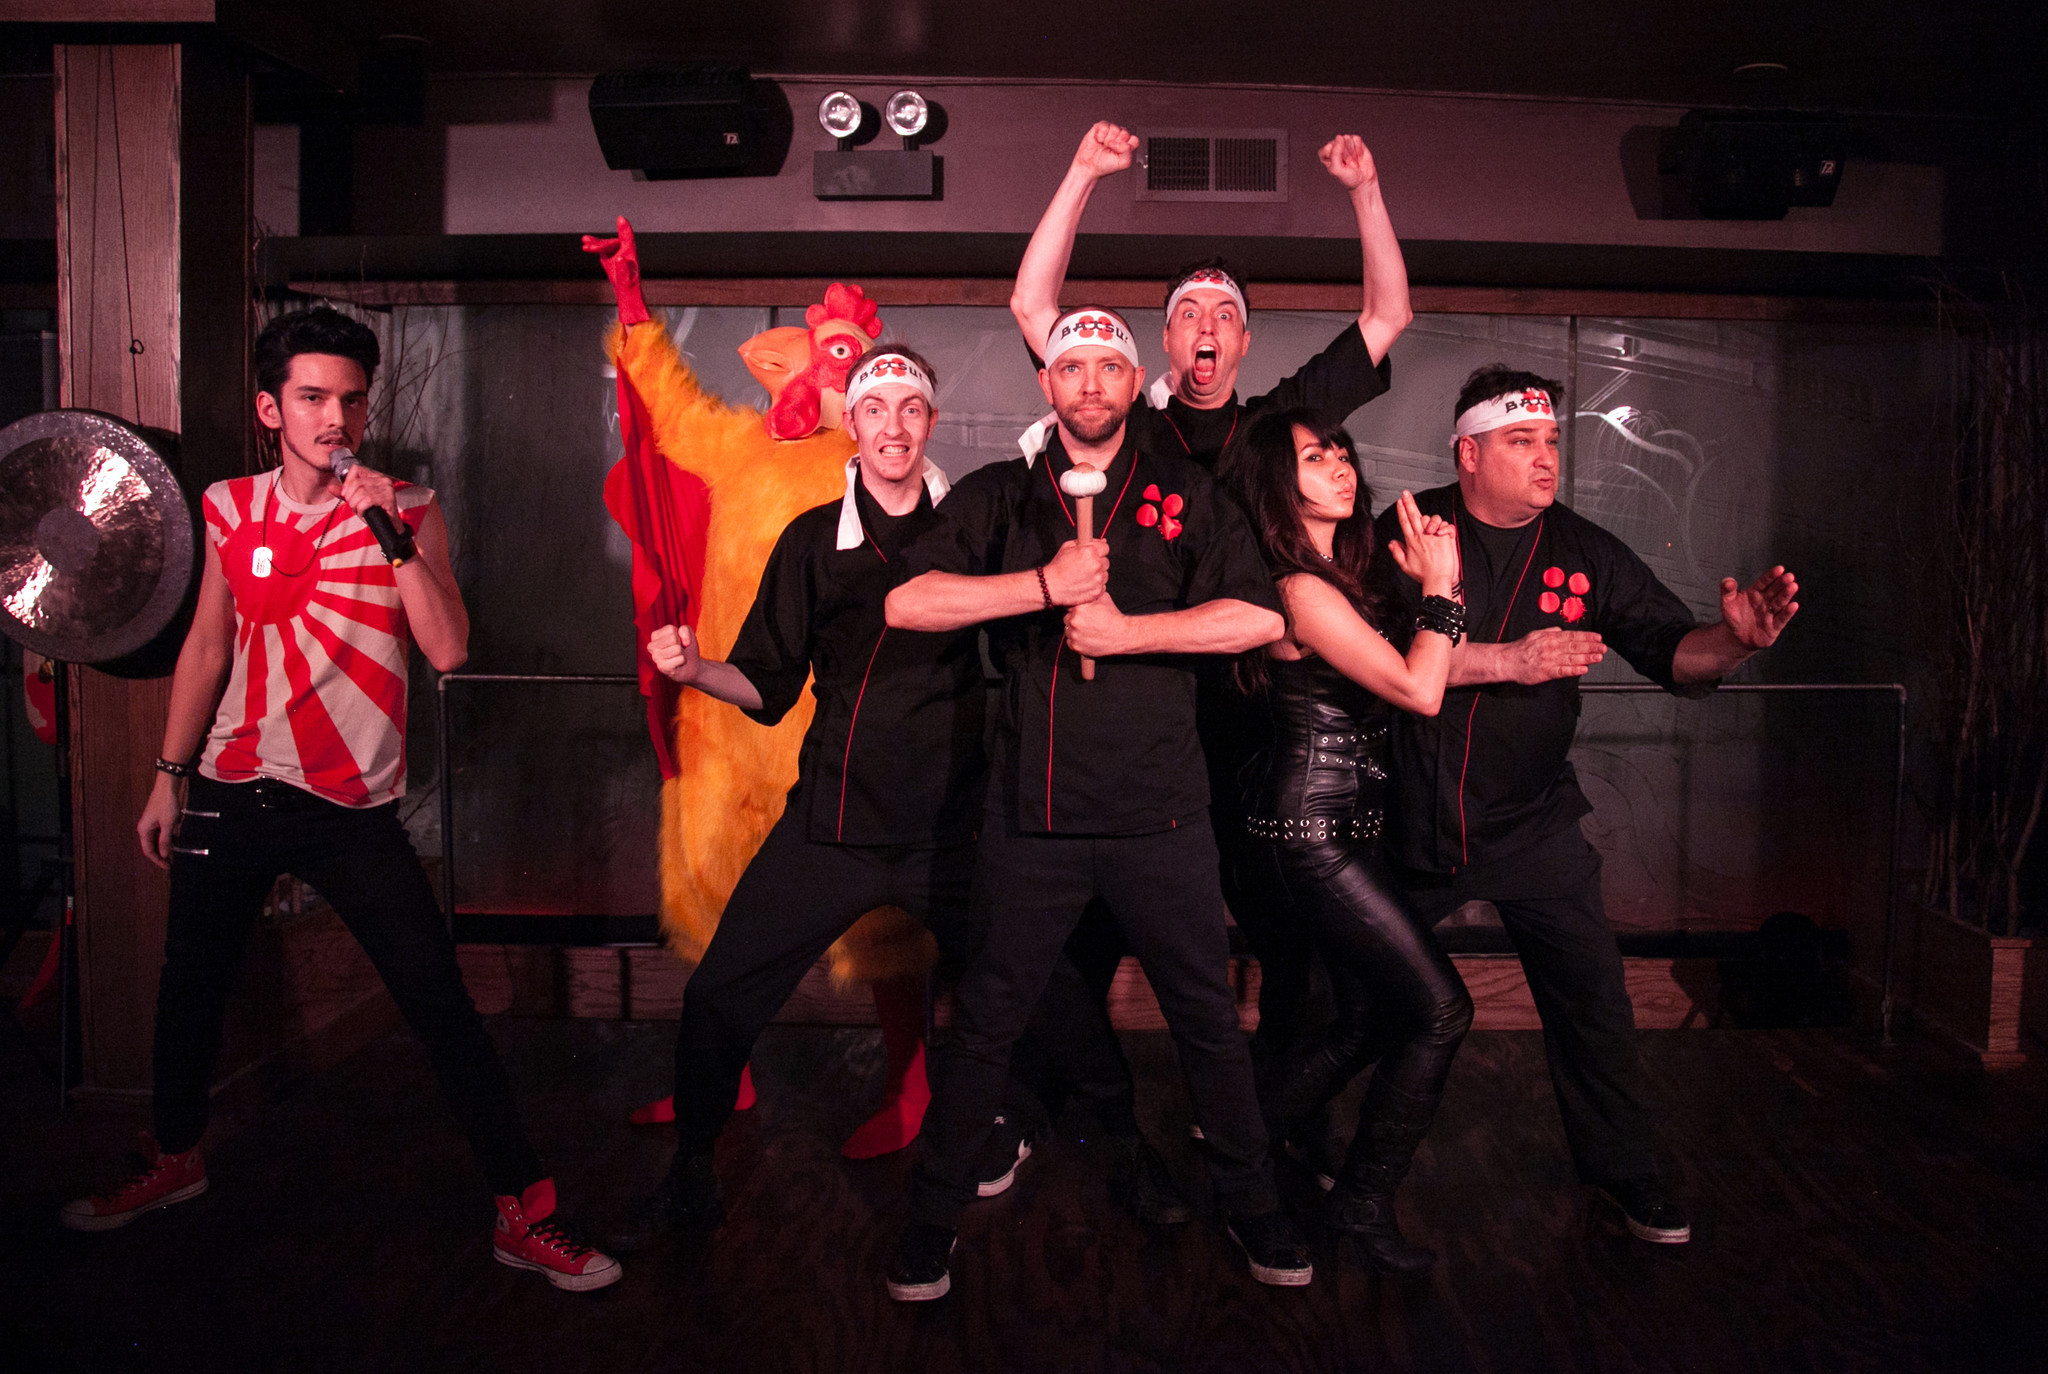 Batsu Gonzo Japanese Game Show Sets Up Shop In Chicago